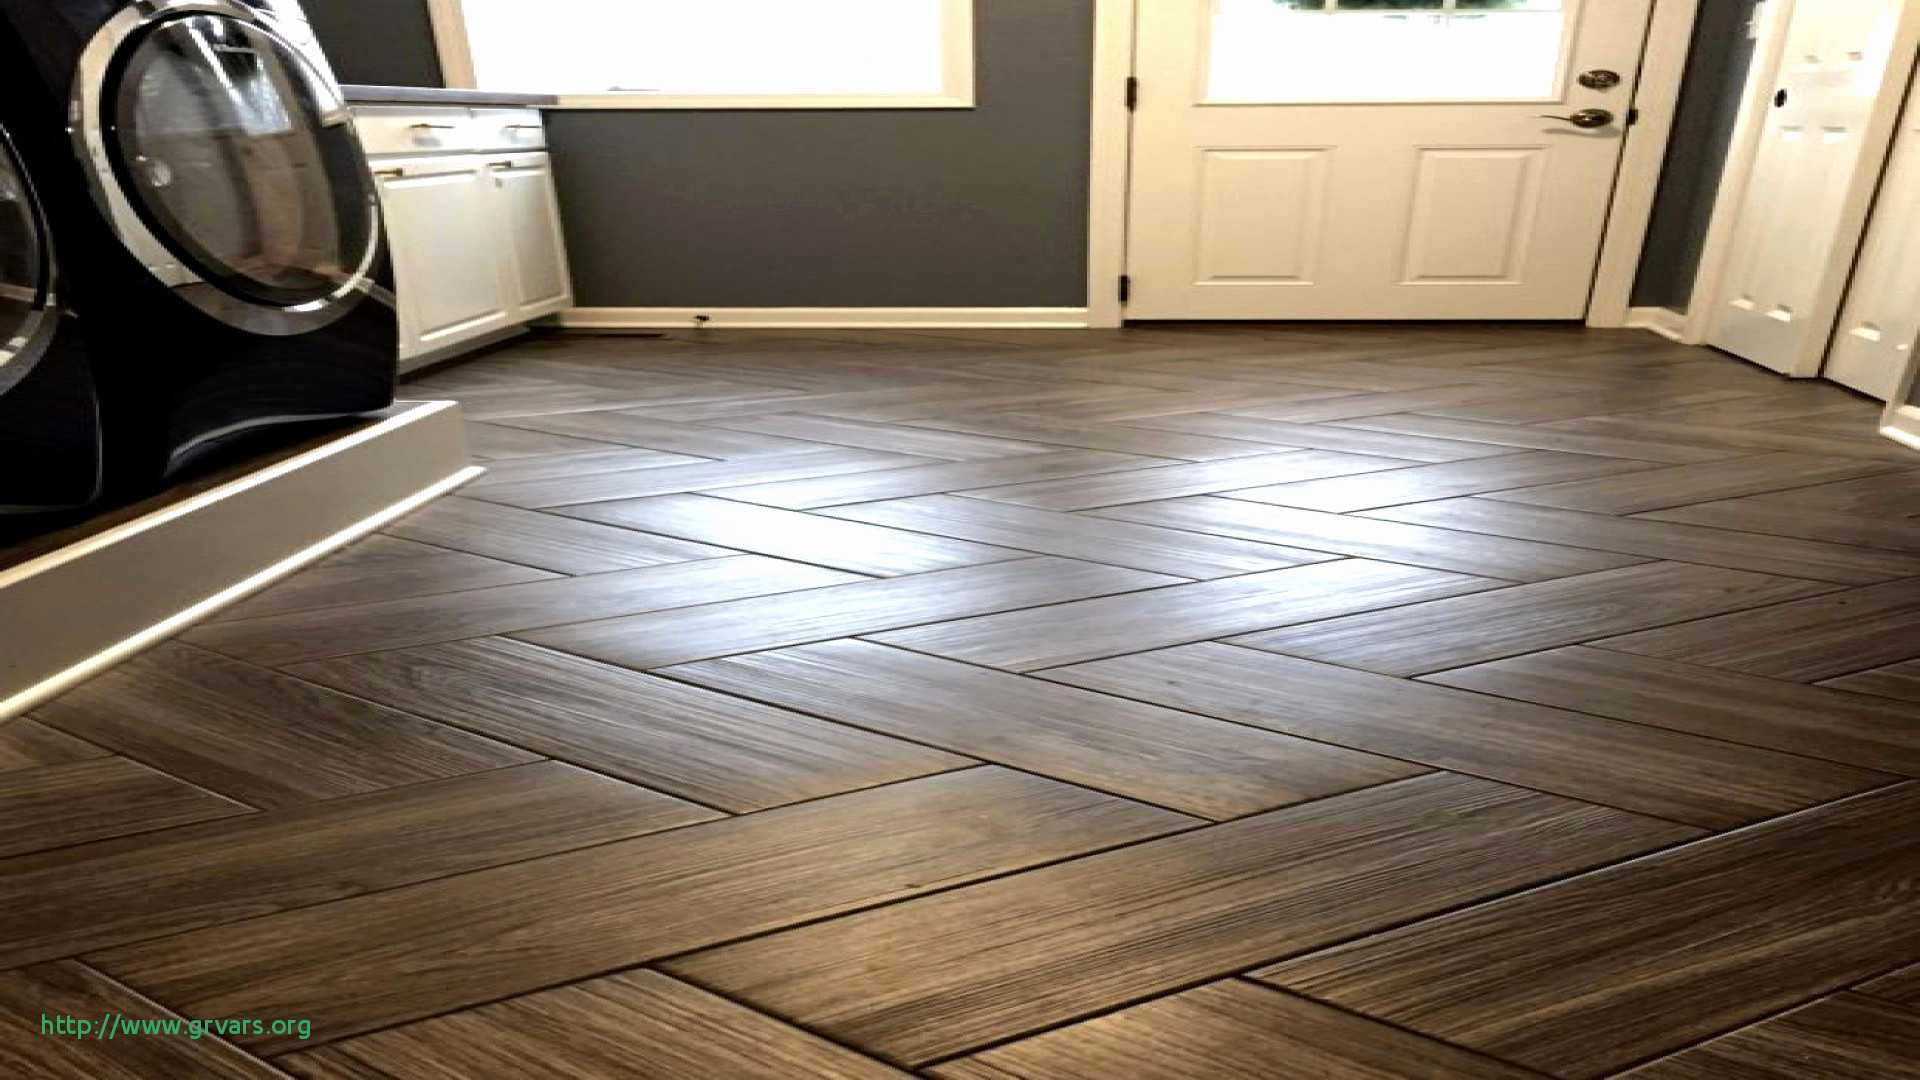 Direct Hardwood Flooring Reviews Of 16 A‰lagant Hardwood Flooring Depot Calgary Ideas Blog for Hardwood Flooring Depot Calgary Unique Wood and Tile Floor Cork Flooring In An Historic southern Inn